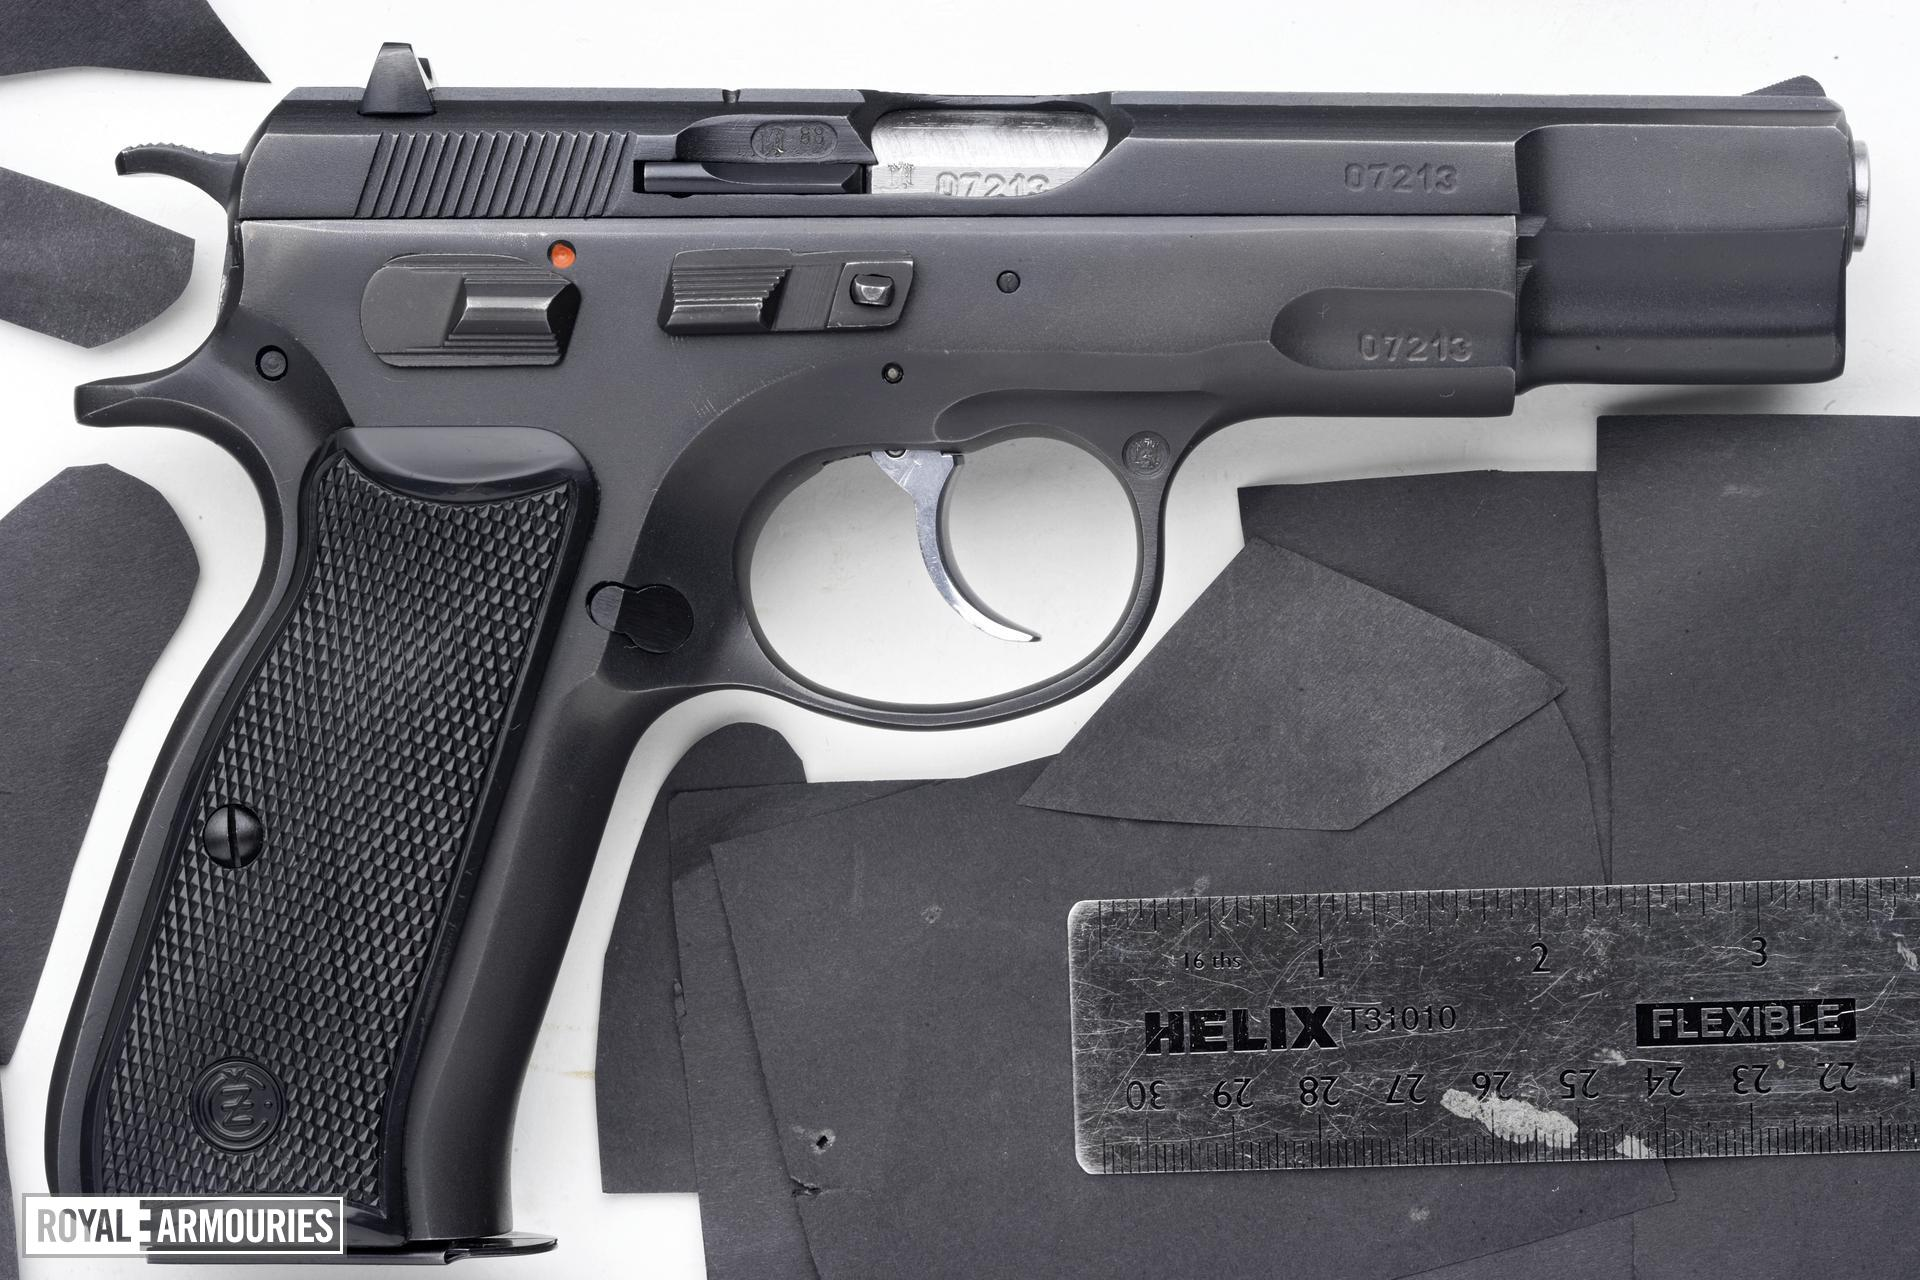 Centrefire self-loading pistol - CZ Model 85